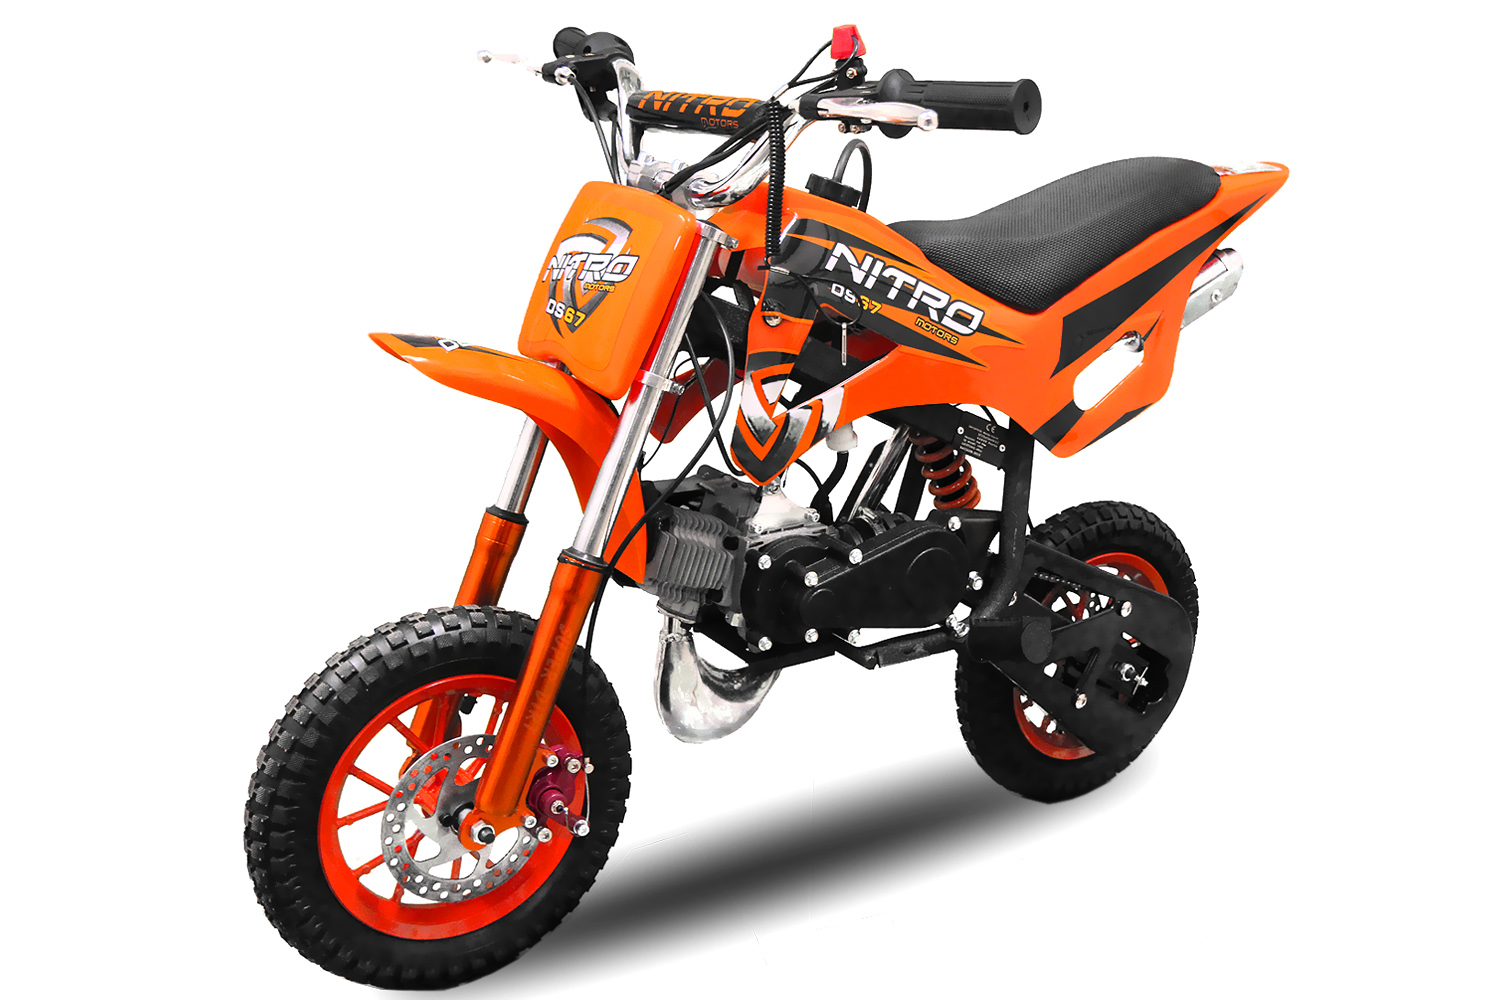 49cc takt mini dirt bike nitro ds 67 motocross. Black Bedroom Furniture Sets. Home Design Ideas